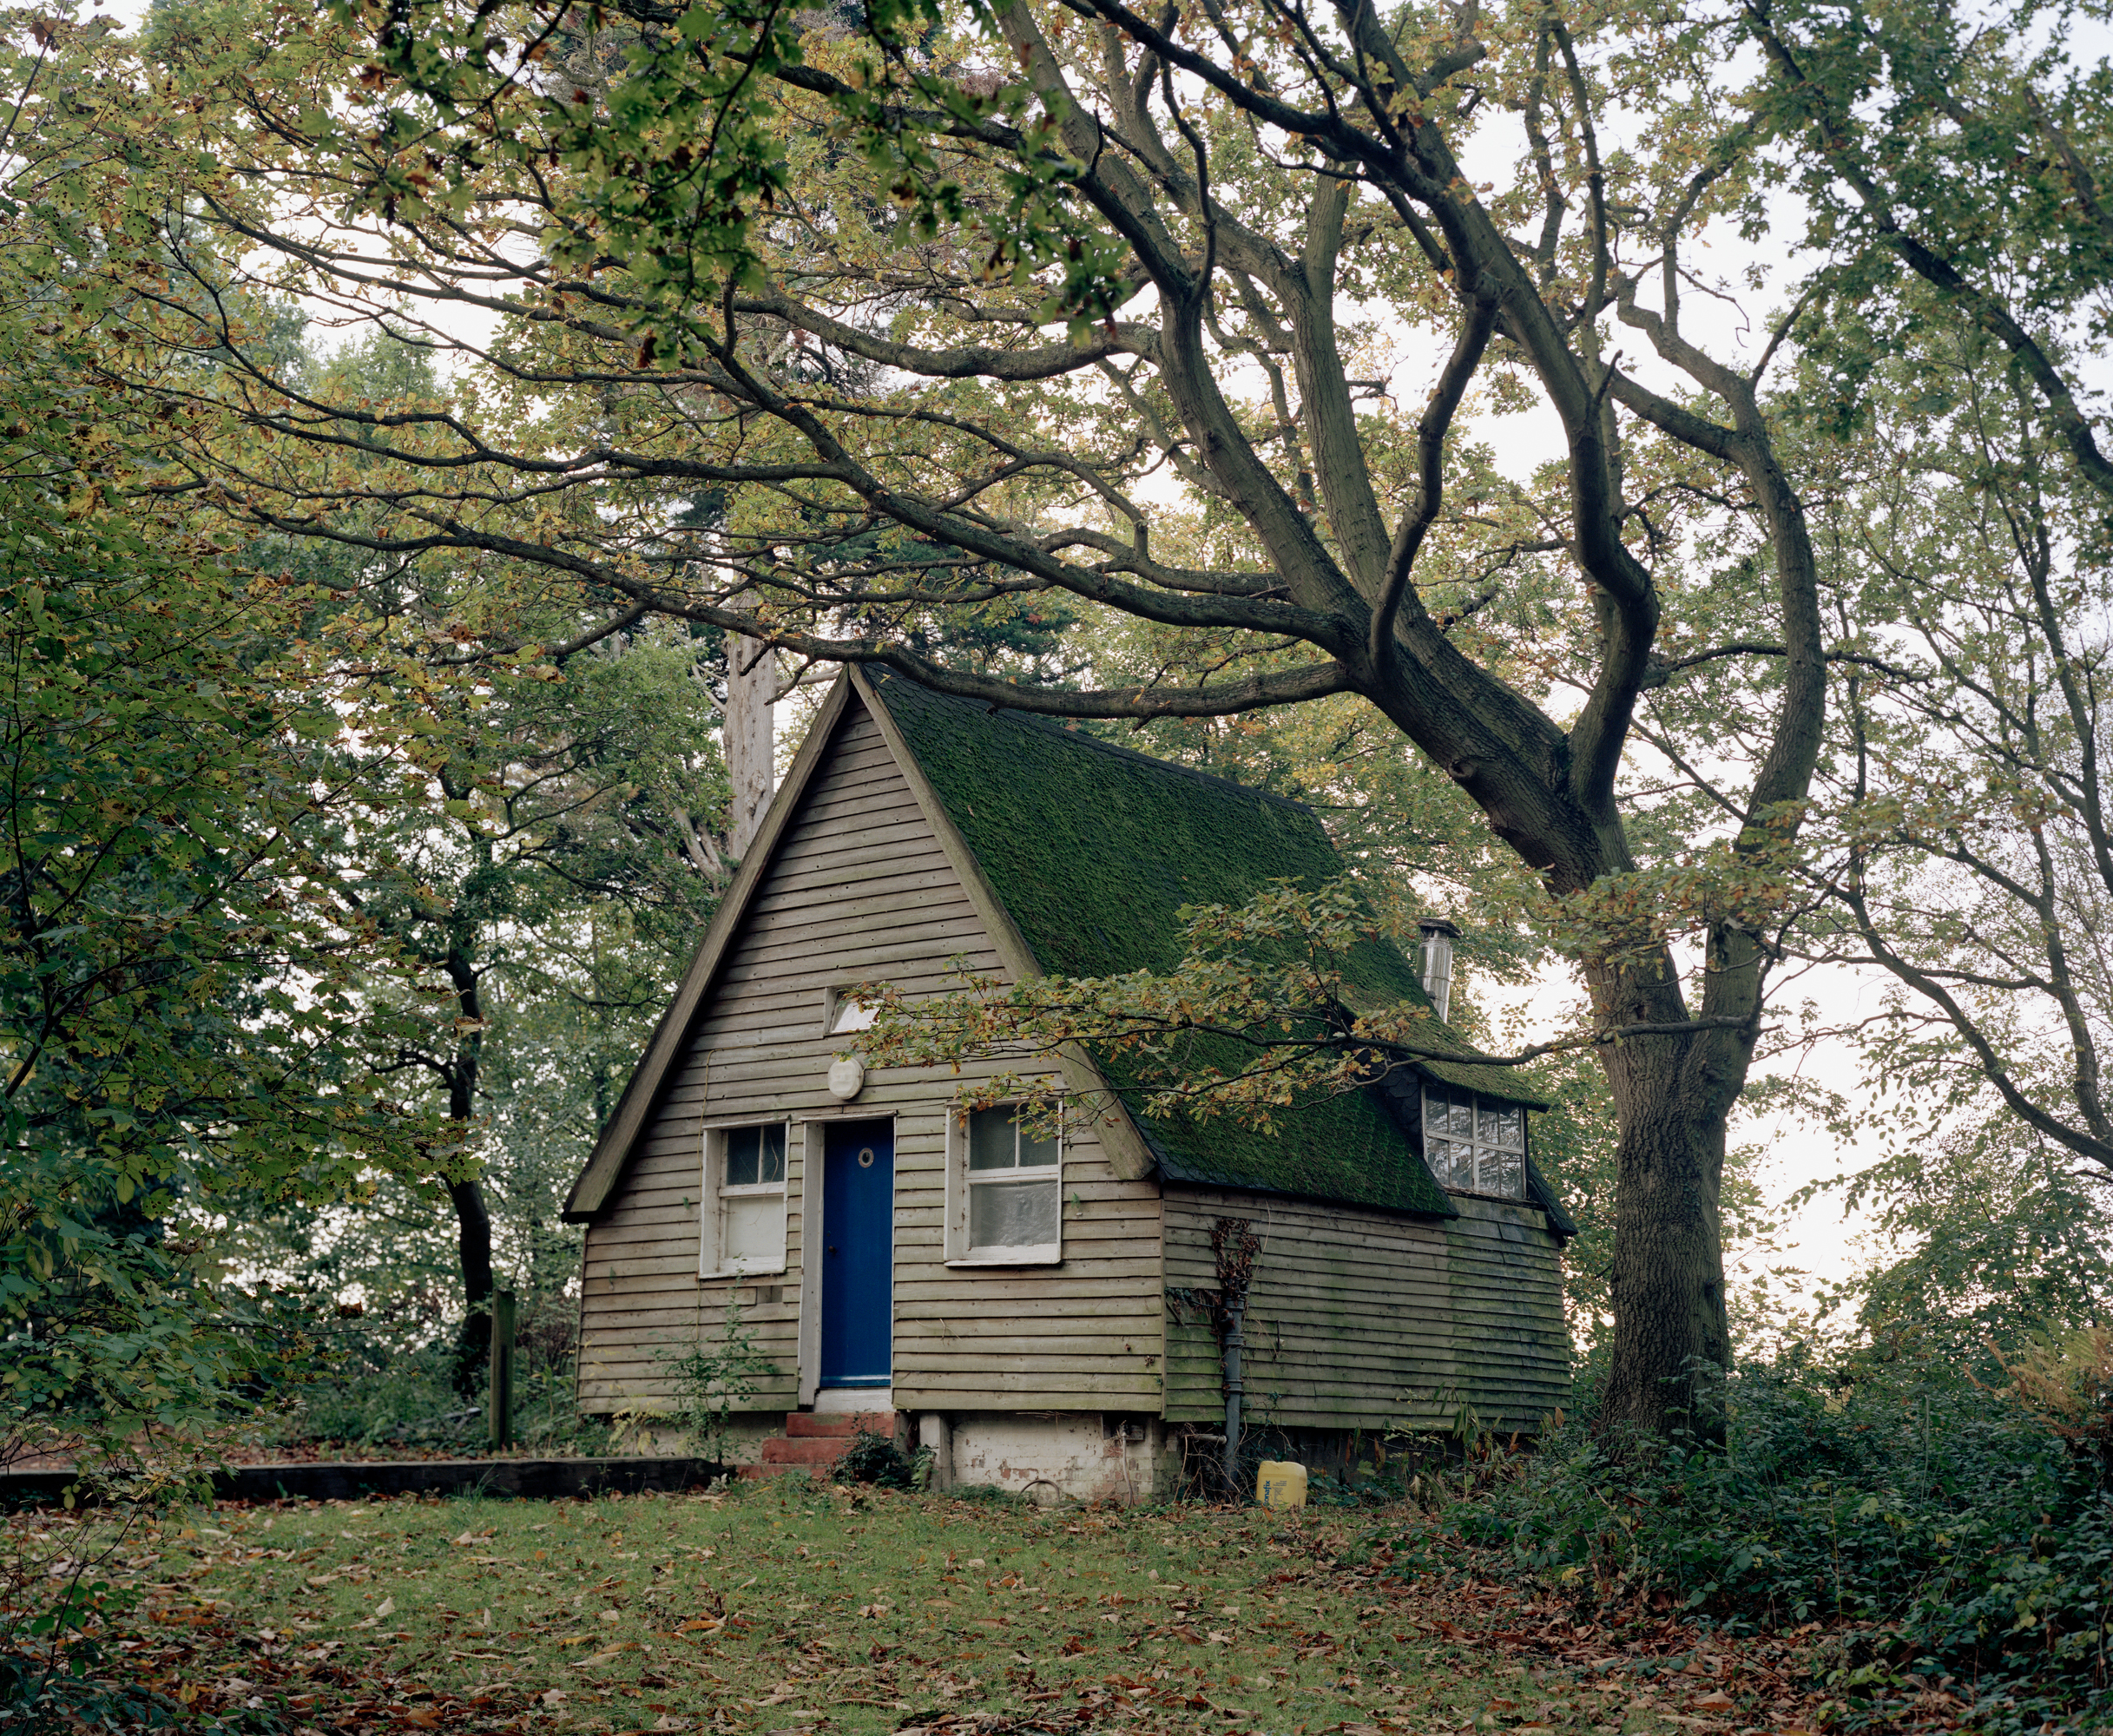 Cabin by the Orwell, Woolverstone, 2013.jpg